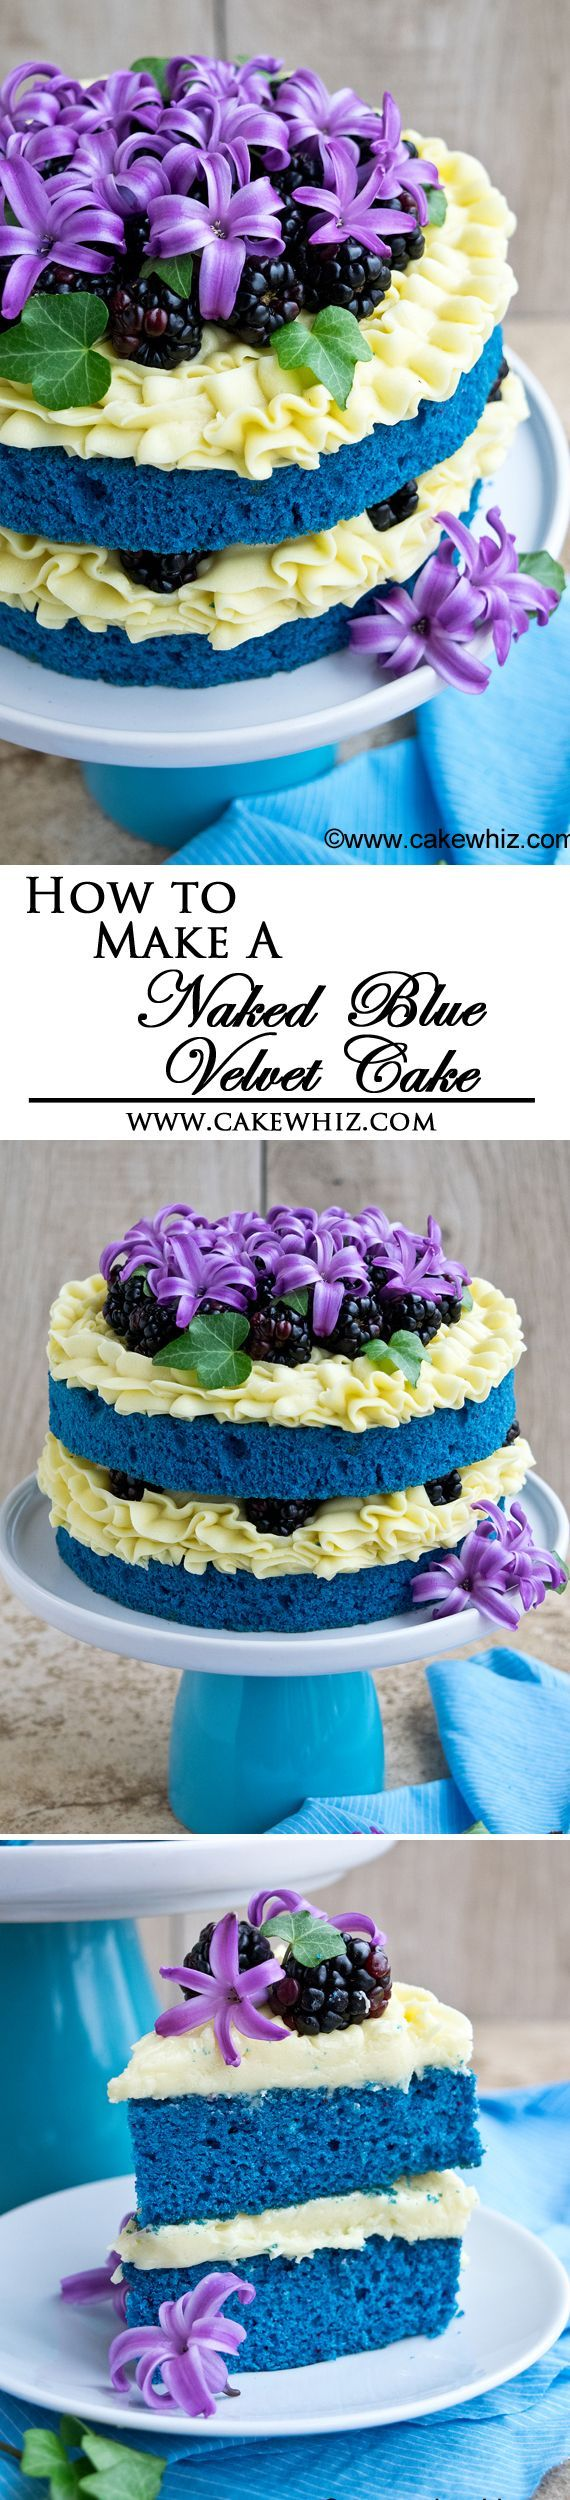 Learn How To Make A NAKED BLUE VELVET CAKE With Step By Step Instructions